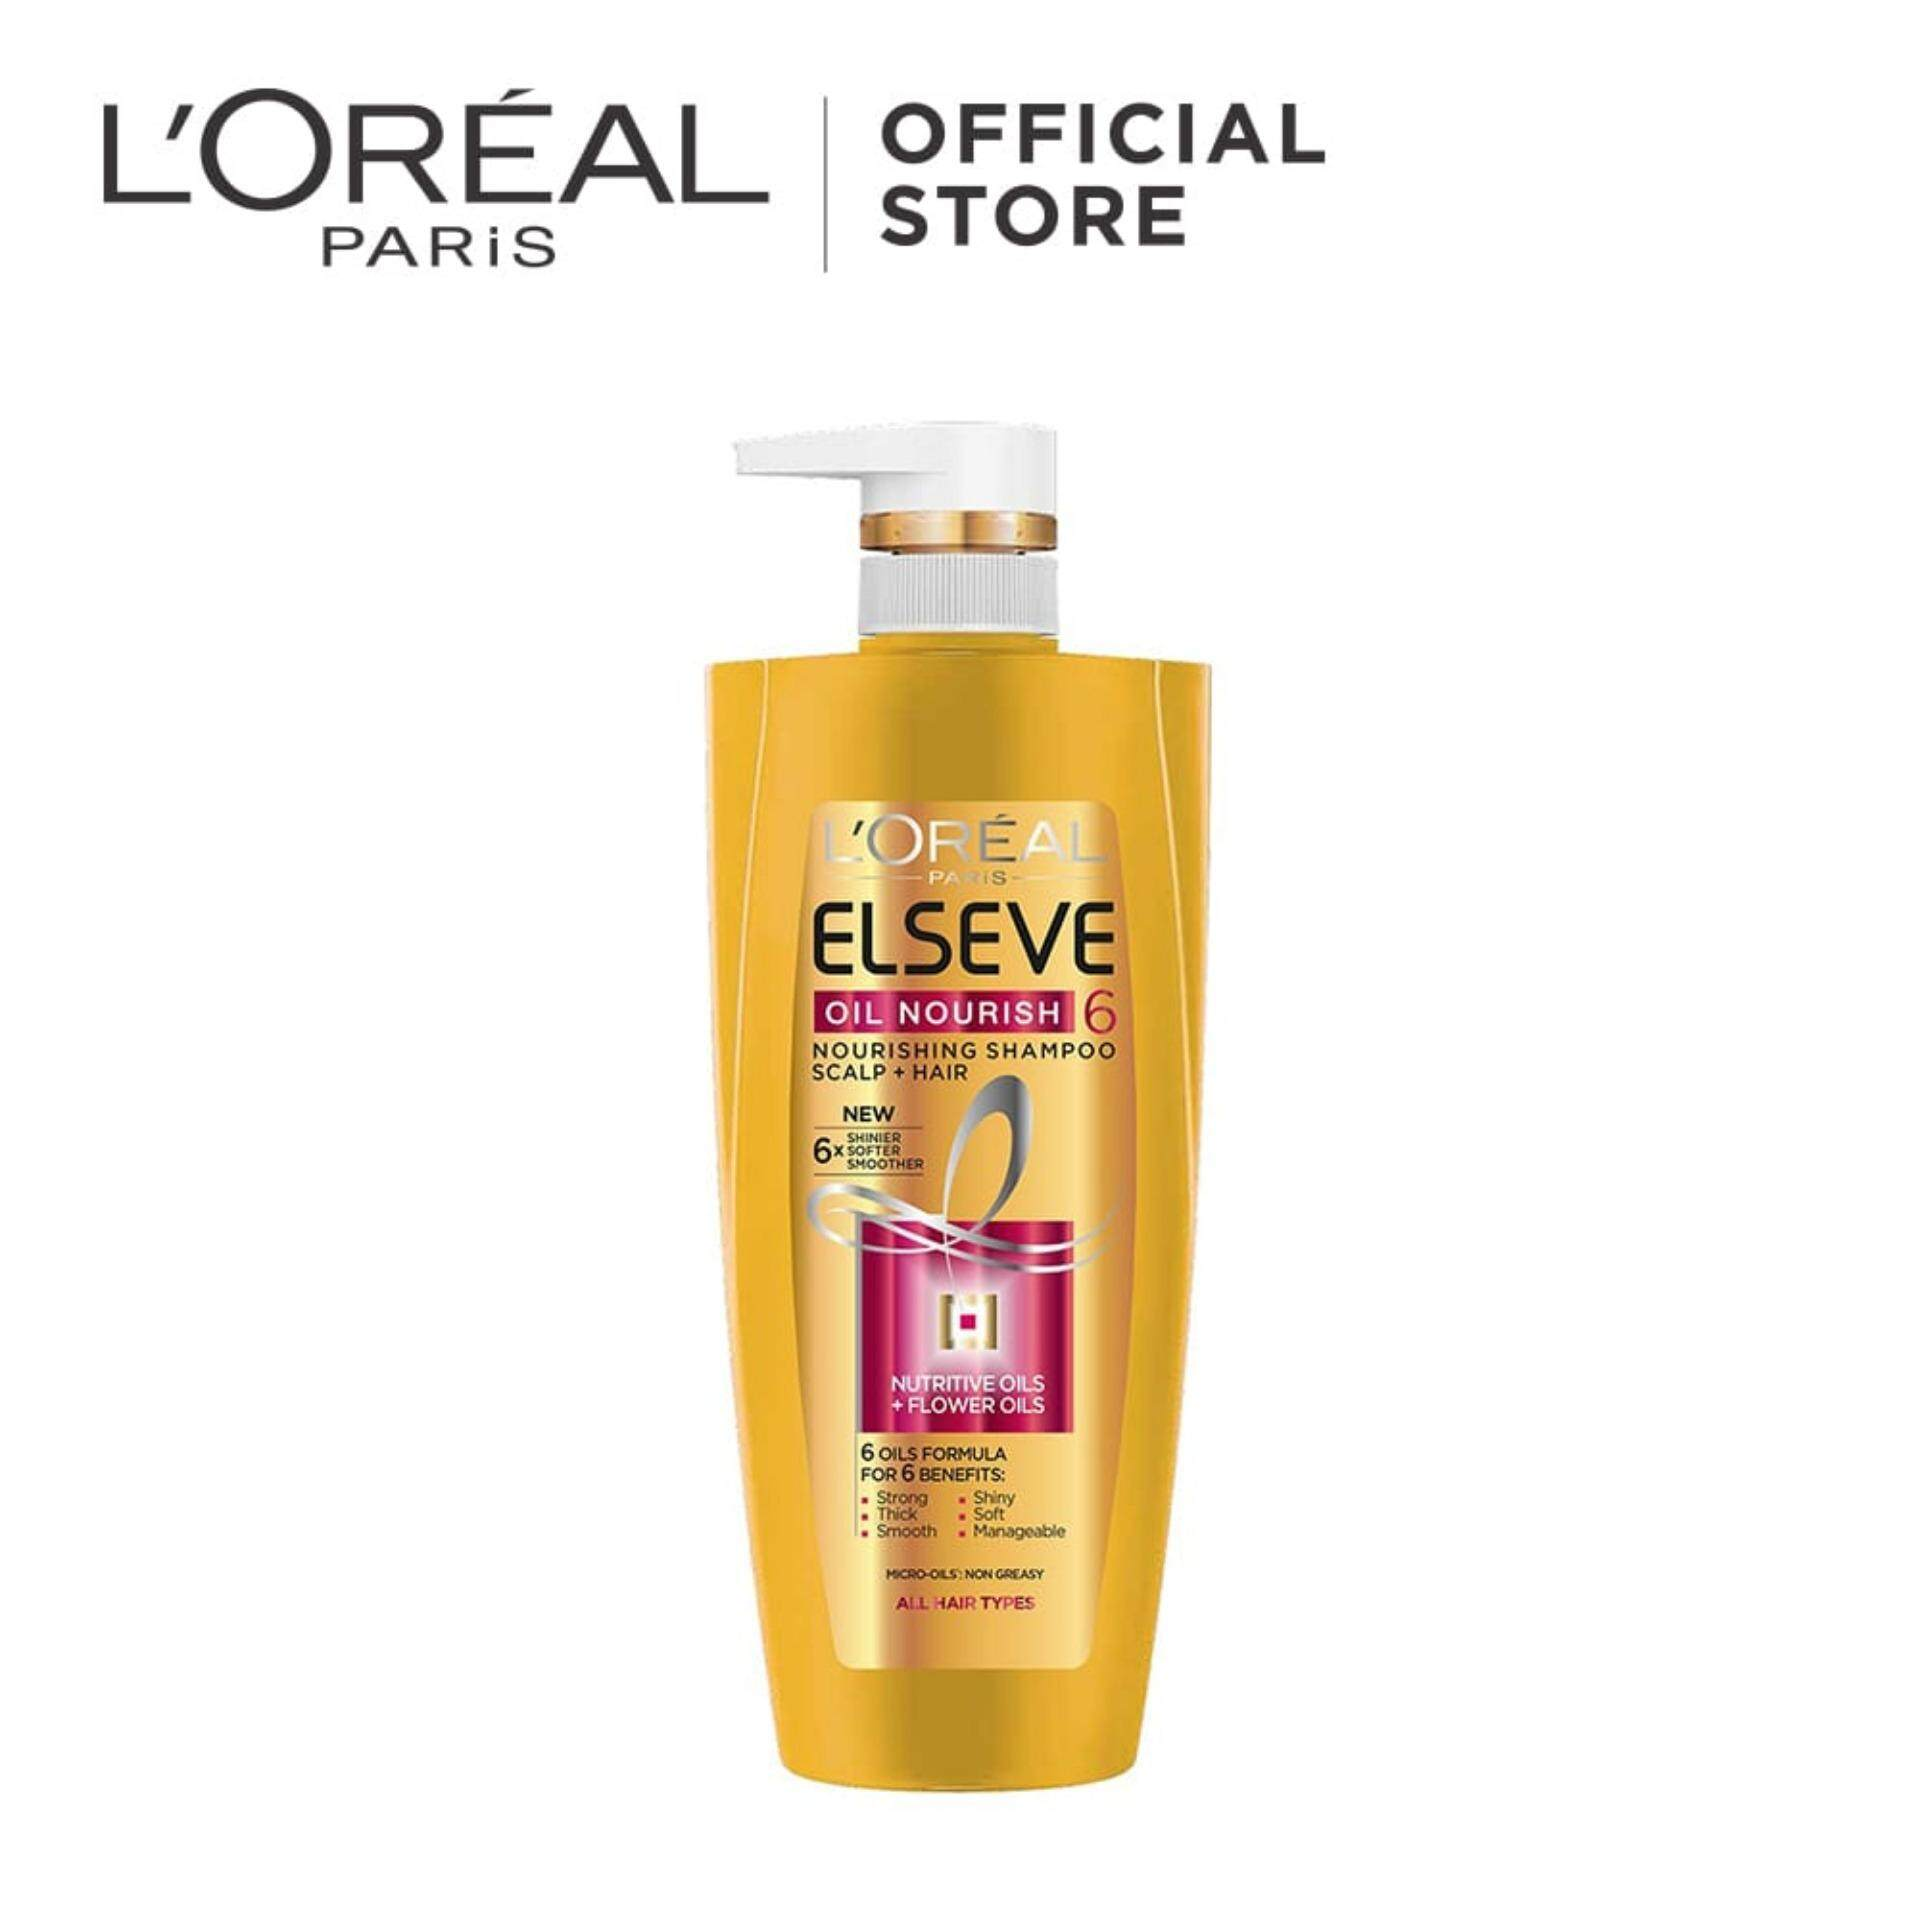 Hair Care Products With Best Online Price In Malaysia Ellips Vitamin Smooth Ampamp Shiny Sachet 6 Capsule Loreal Paris Elseve Oil Nourish Shampoo 650ml